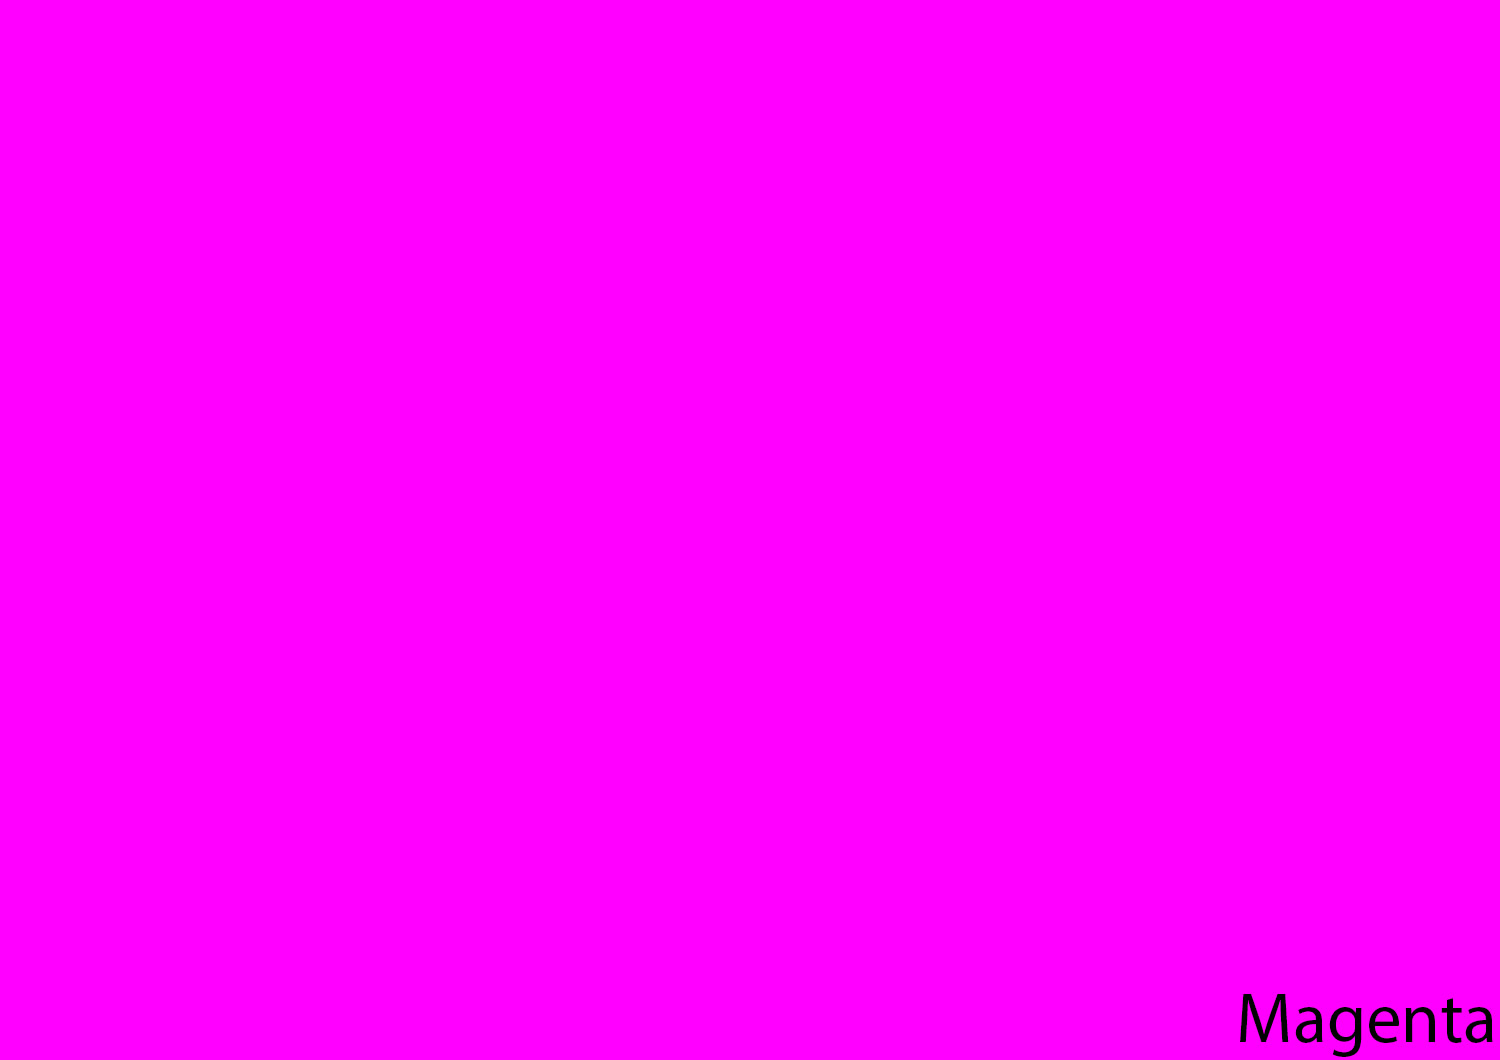 Mastering Color Series - The Psychology and Evolution of the Color PINK and its use in Photography